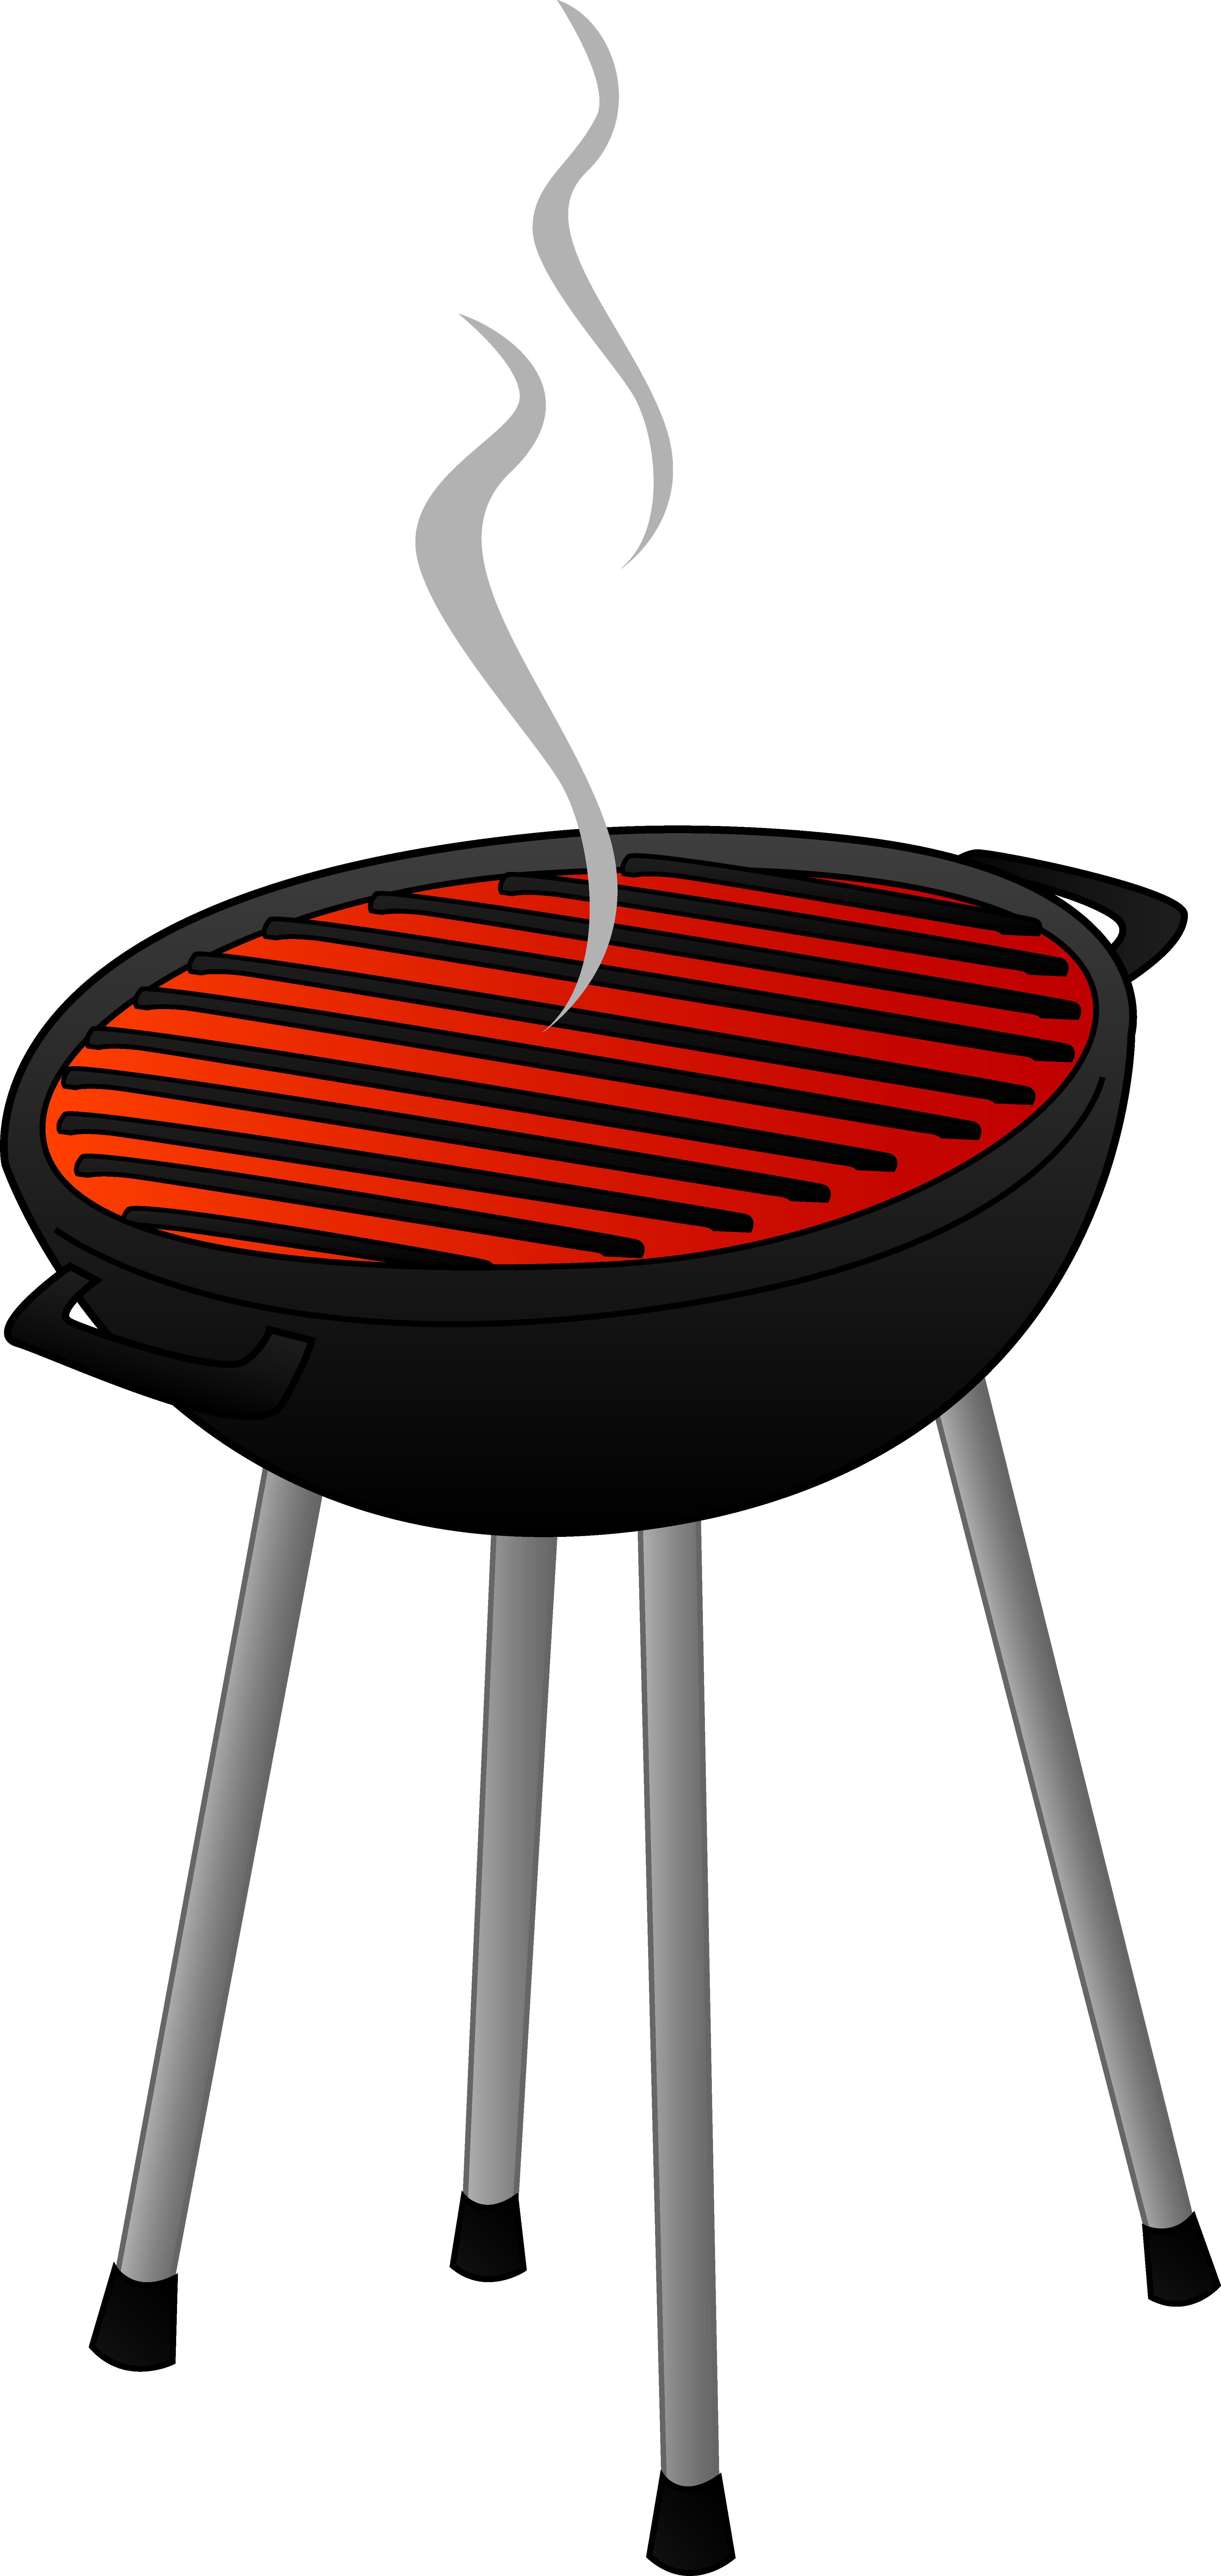 Free png grill transparent. Bbq clipart